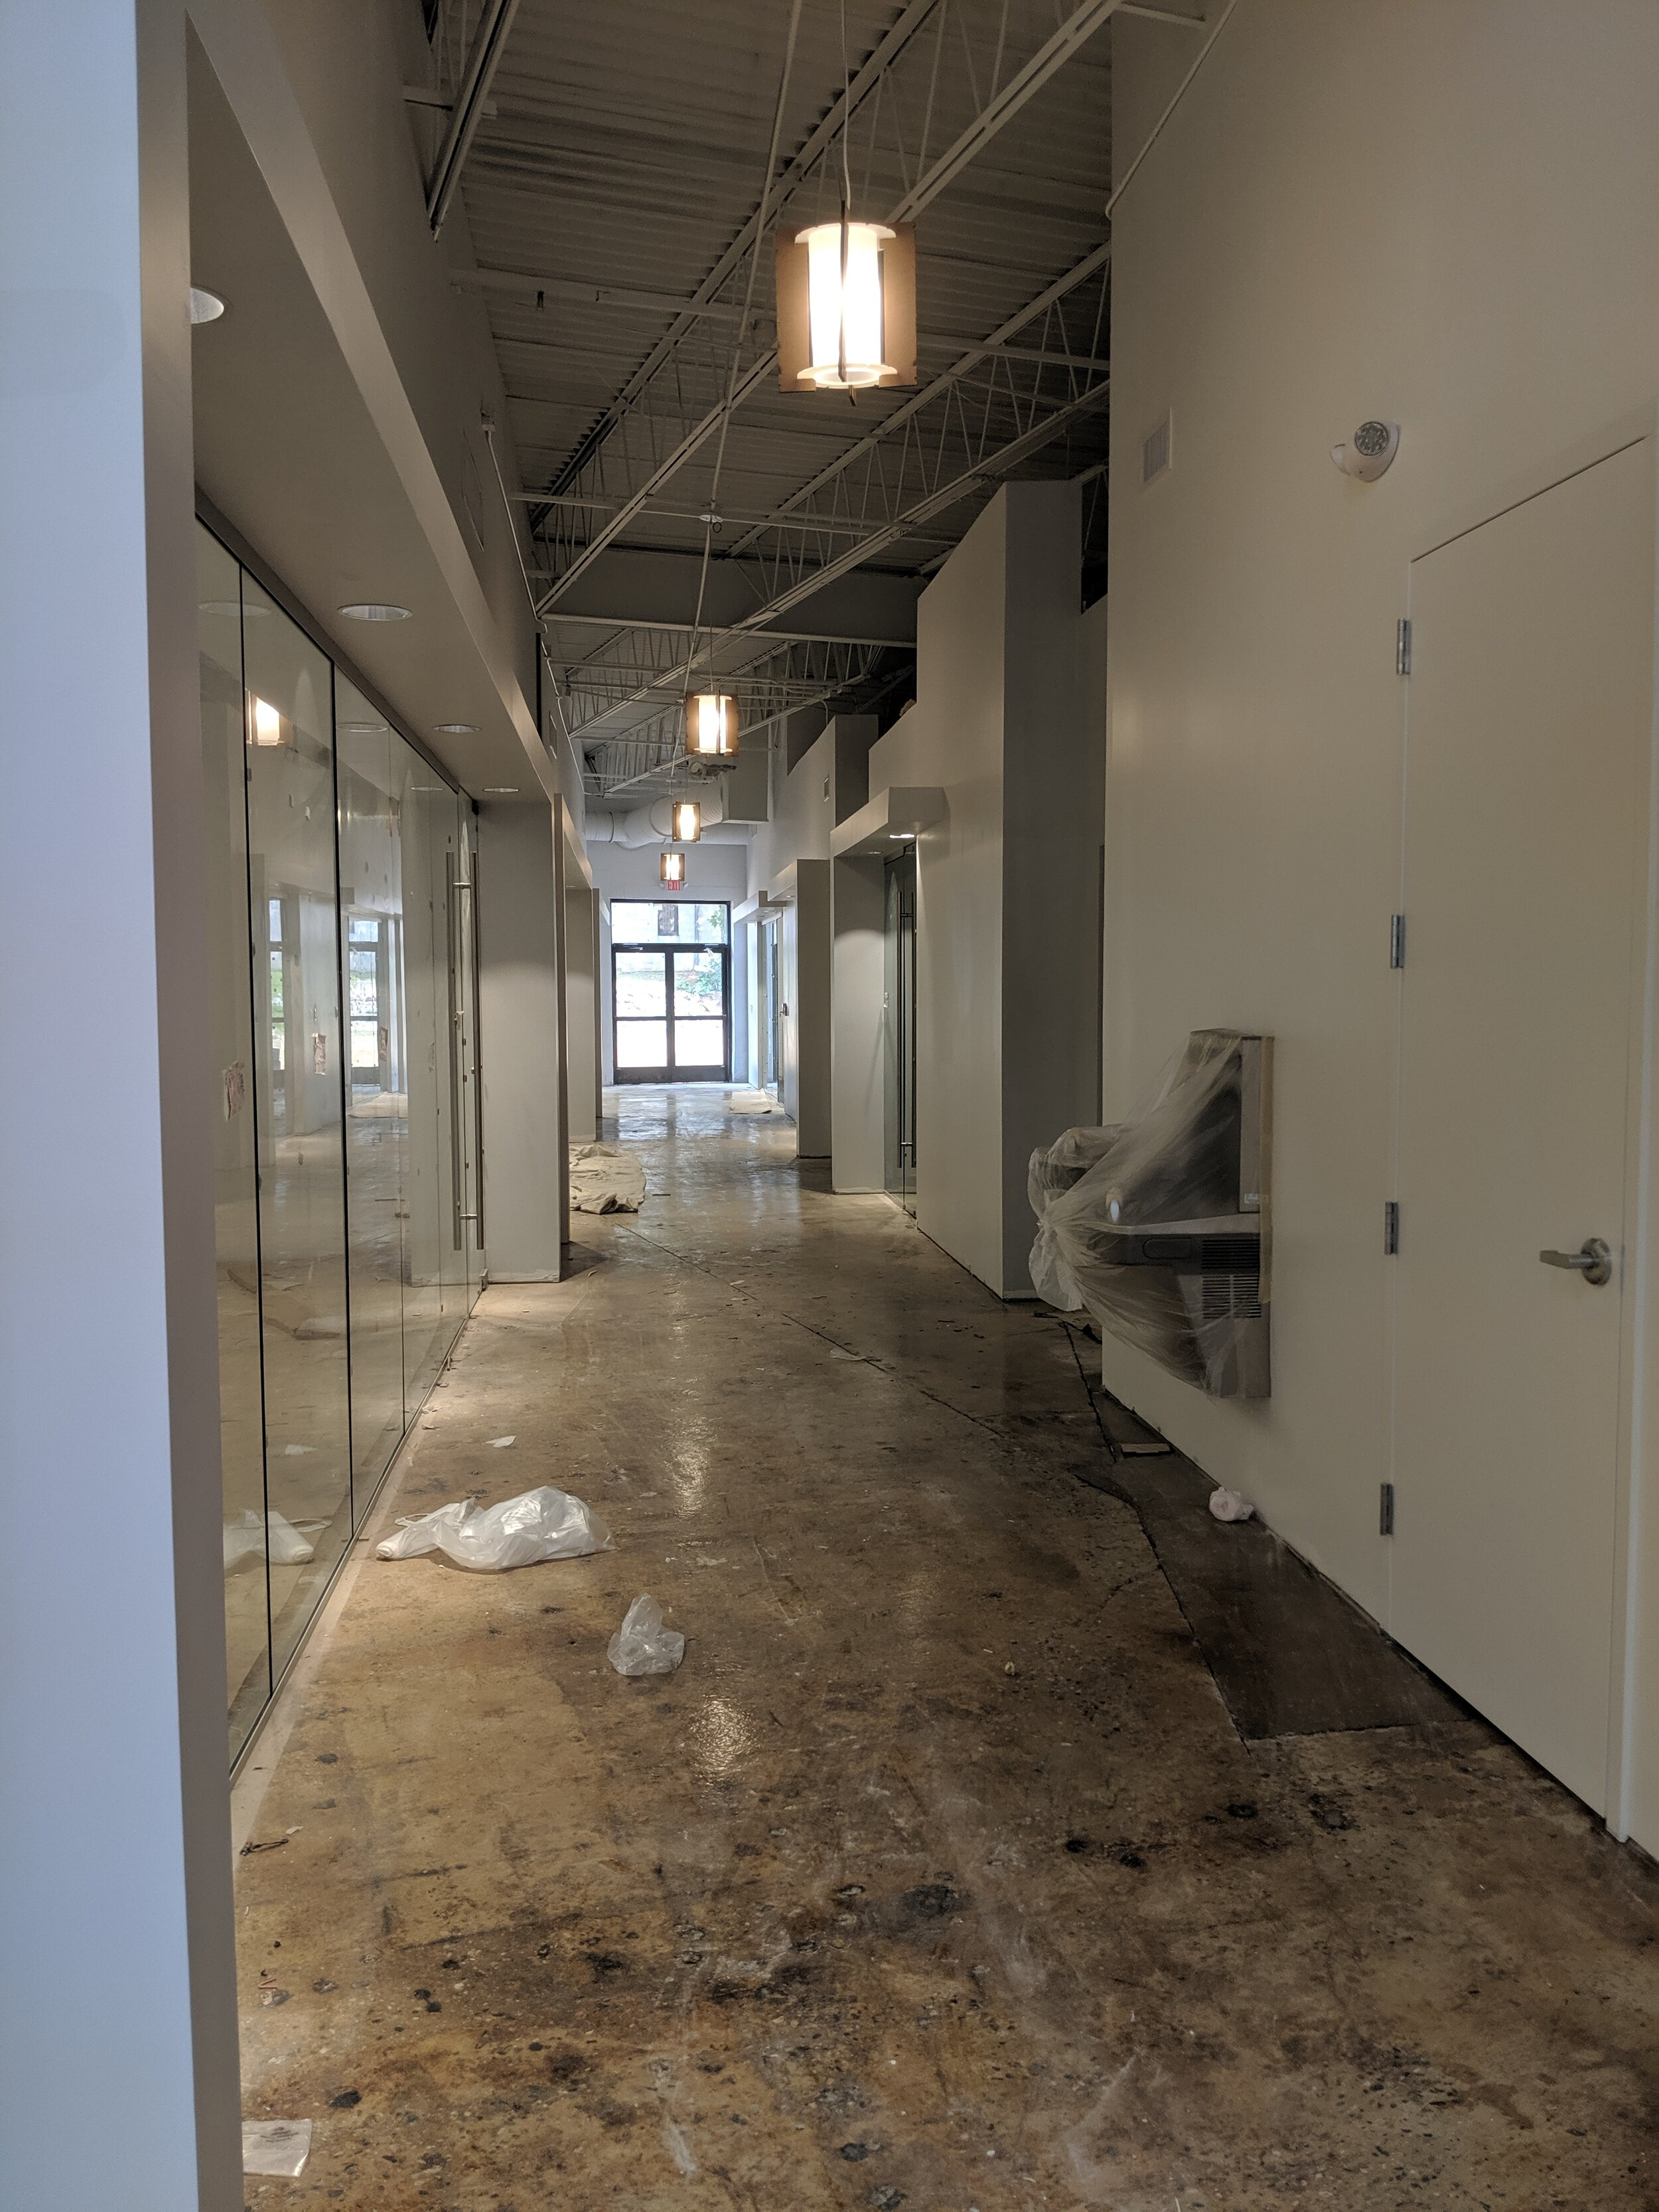 Conference room hallway